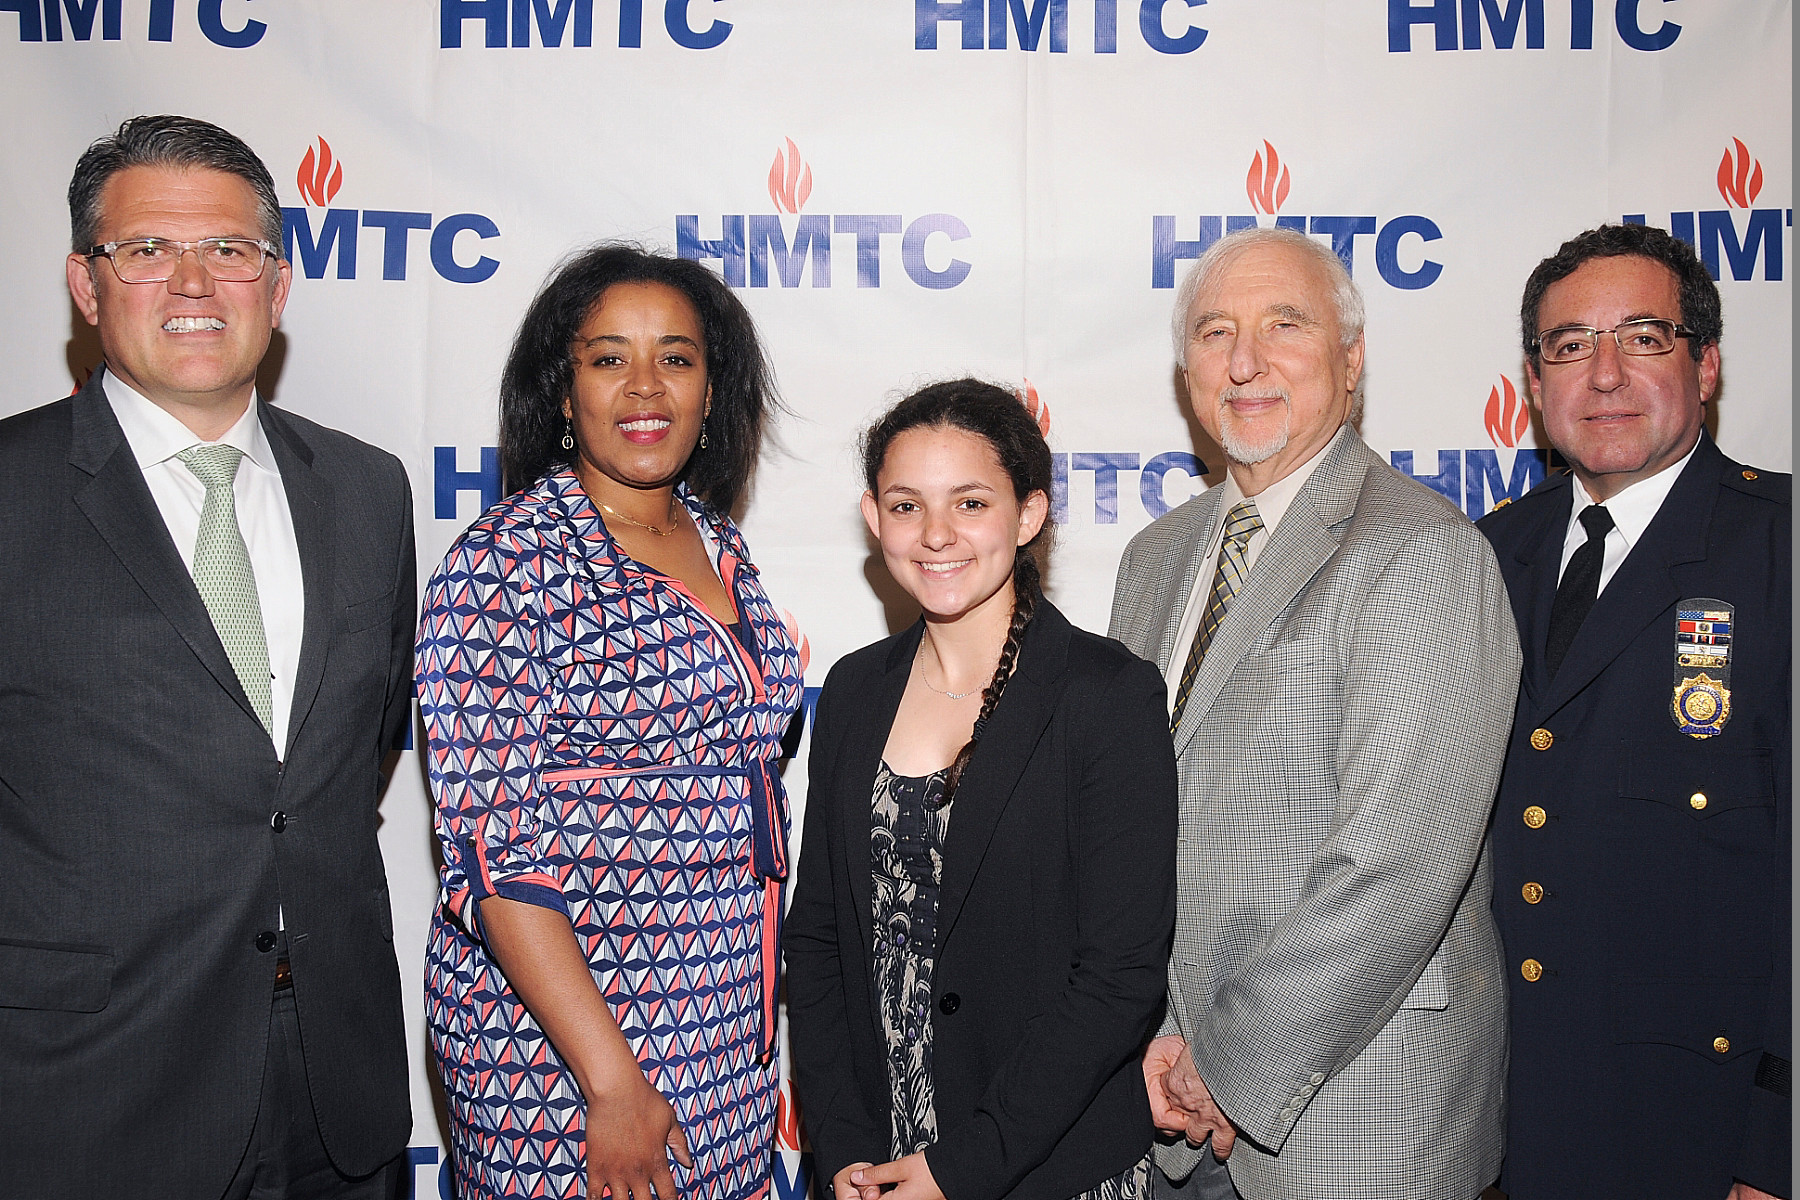 Hewlett High sophomore Sophie Riegel won an Upstander Award from the Holocaust Memorial & Tolerance Center of Nassau County. From left were Peter Klein, Claire Friedlander Family Foundation, Tracy Garrison-Feinberg, director of the Claire Friedlander Education Institute; Riegel, Steven Markowitz, chairman of the HTMC; and NCPD Deputy Inspector Alan Hirsch.